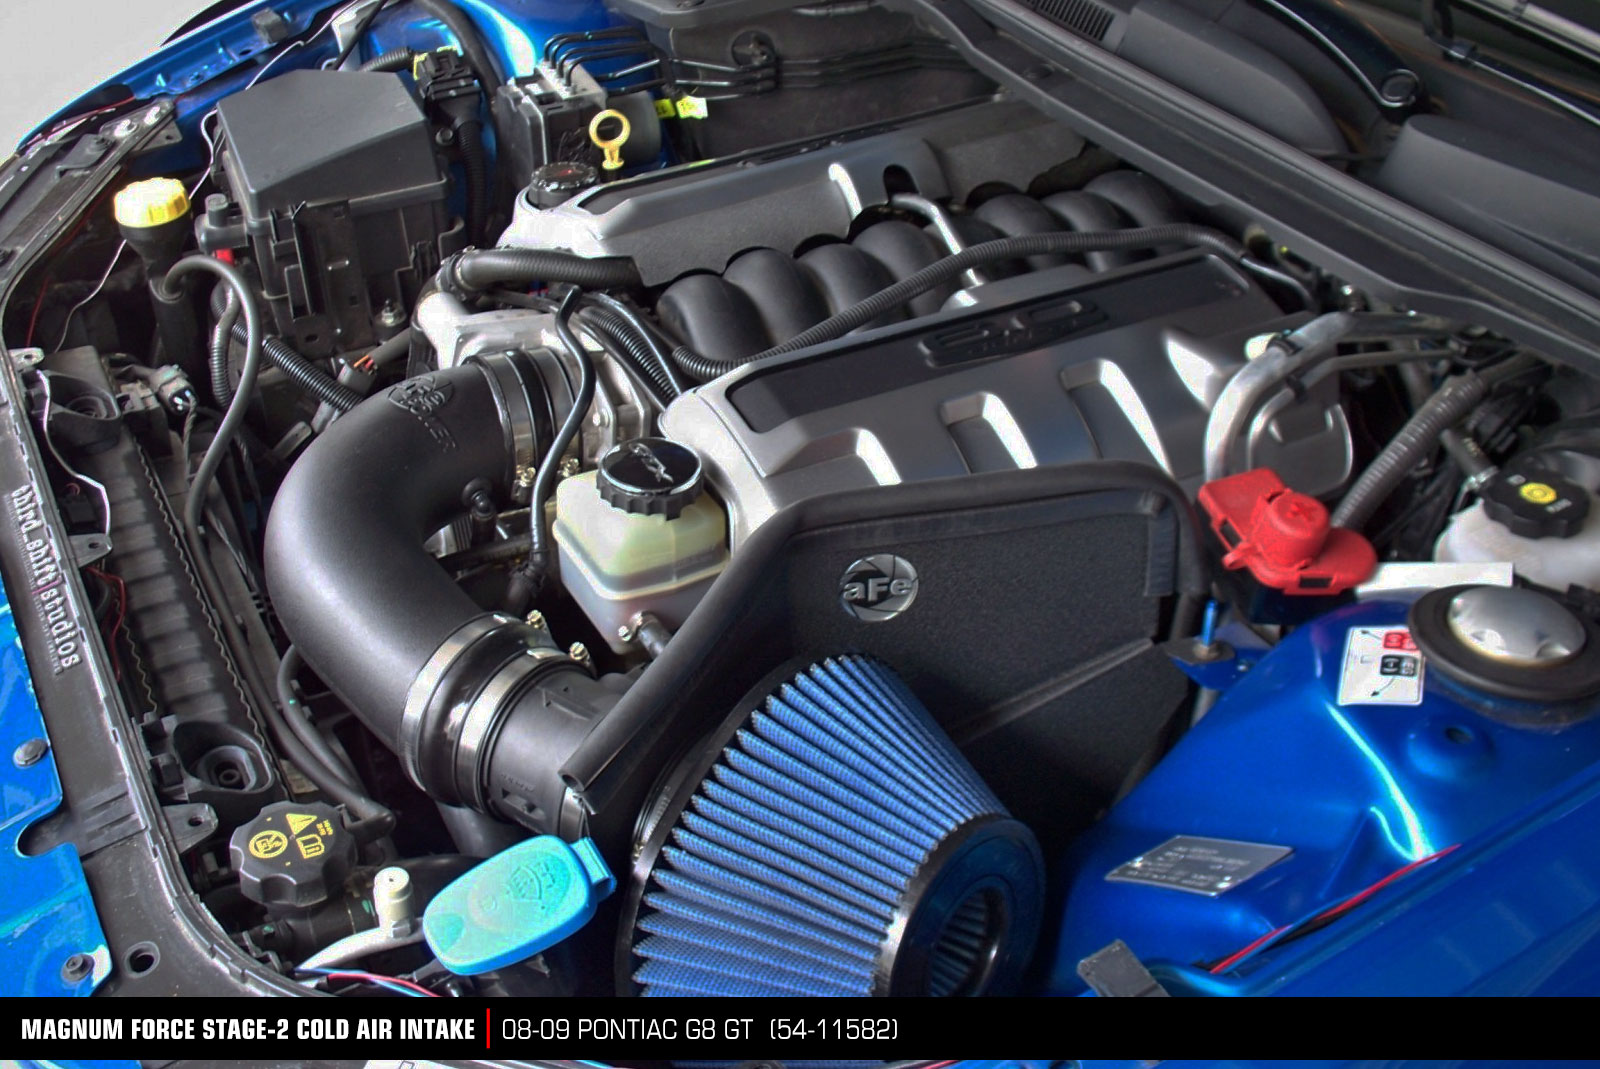 Magnum Force Cold Air Intake Systems | aFe POWER